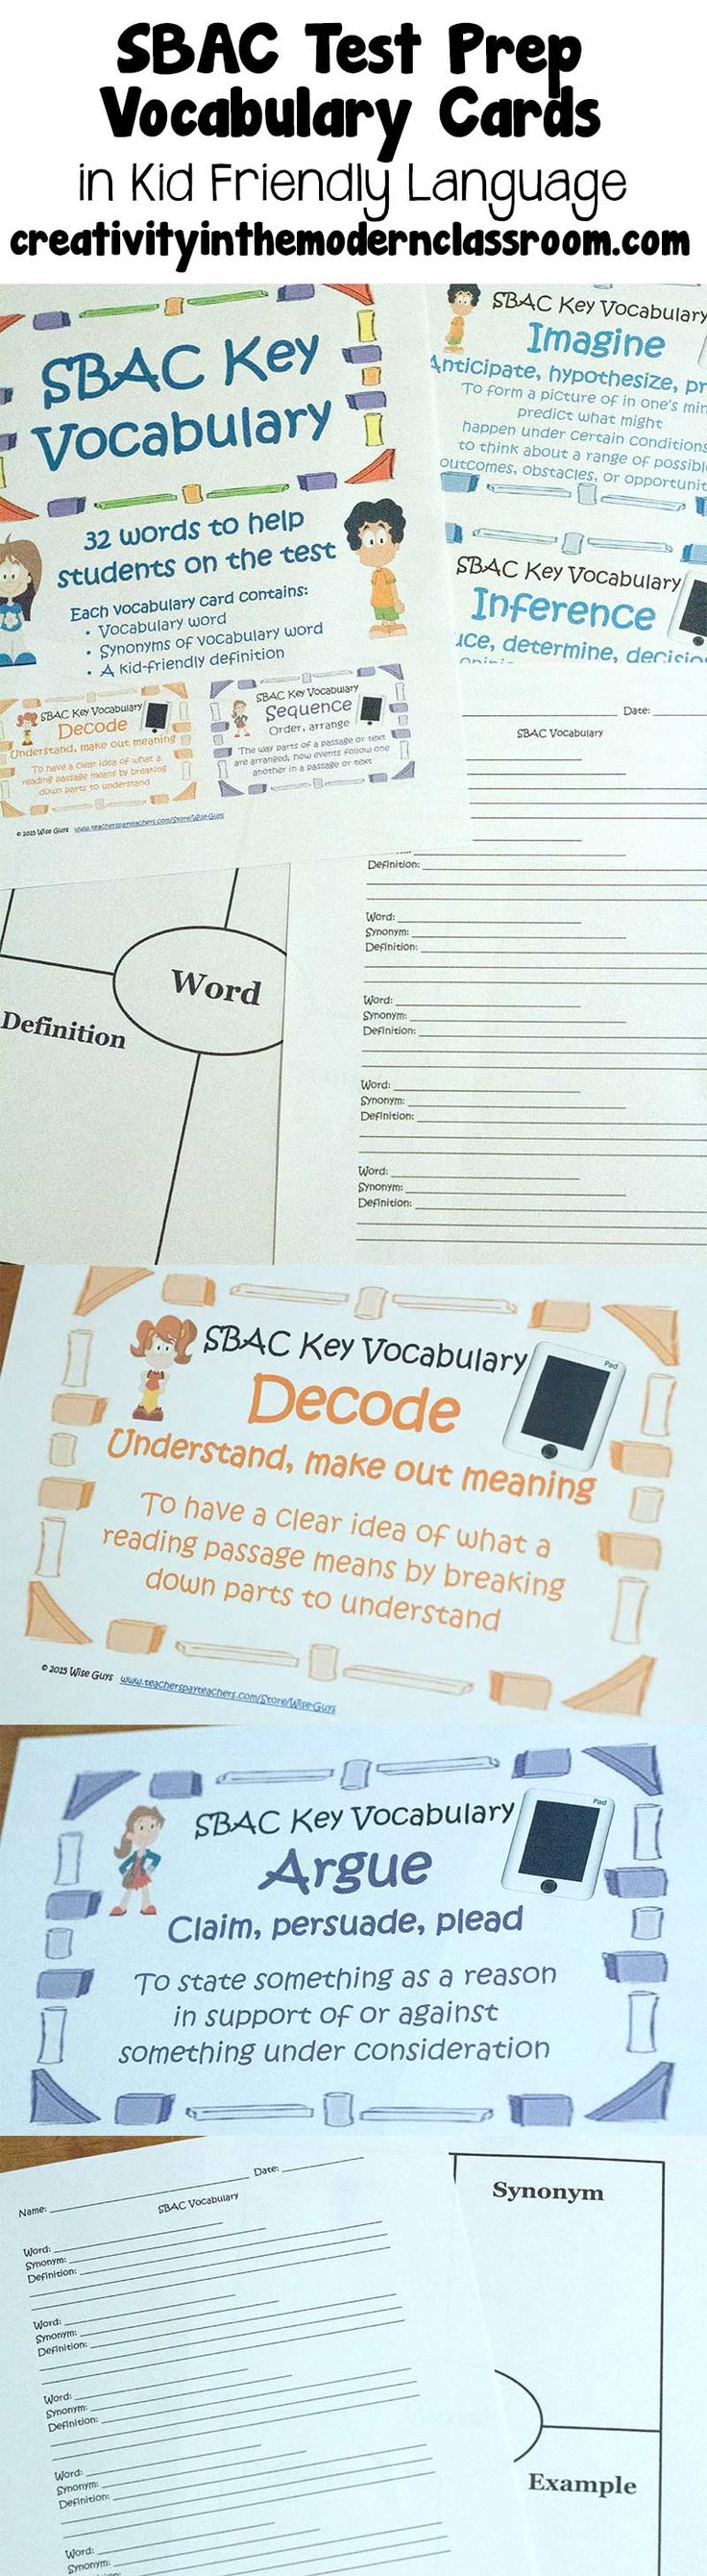 SBAC Vocab Review by the Wise Guys – 32 vocabulary cards in kid-friendly language for SBAC review + a frayer model template for INBs and a worksheet.